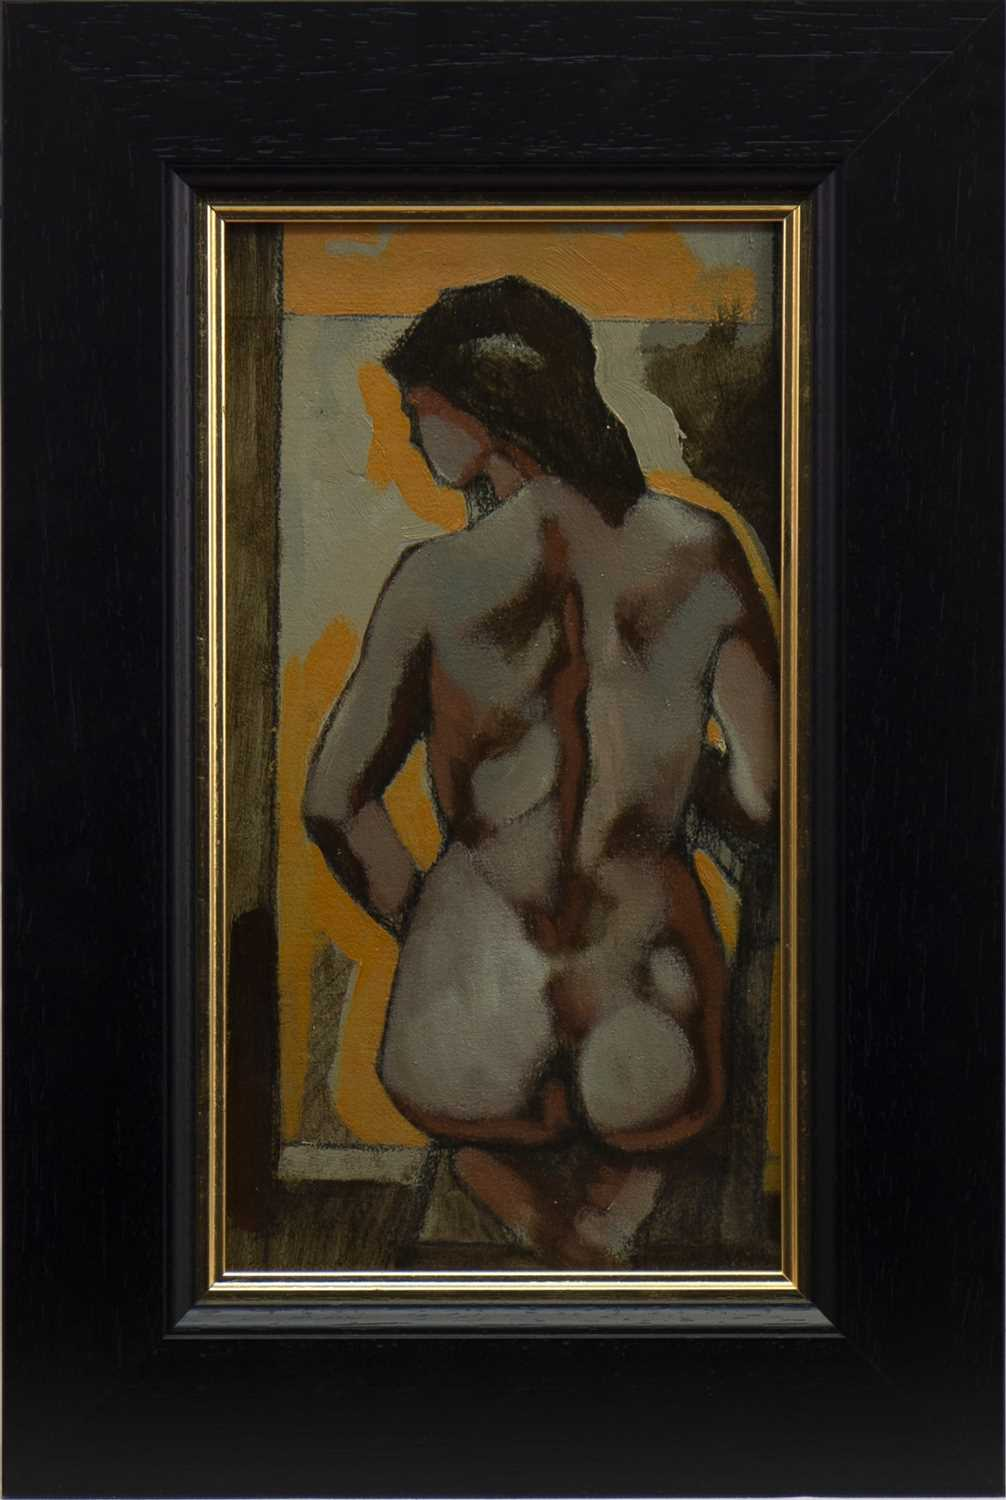 Lot 554-FEMALE NUDE, AN OIL BY JAMIE O'DEA